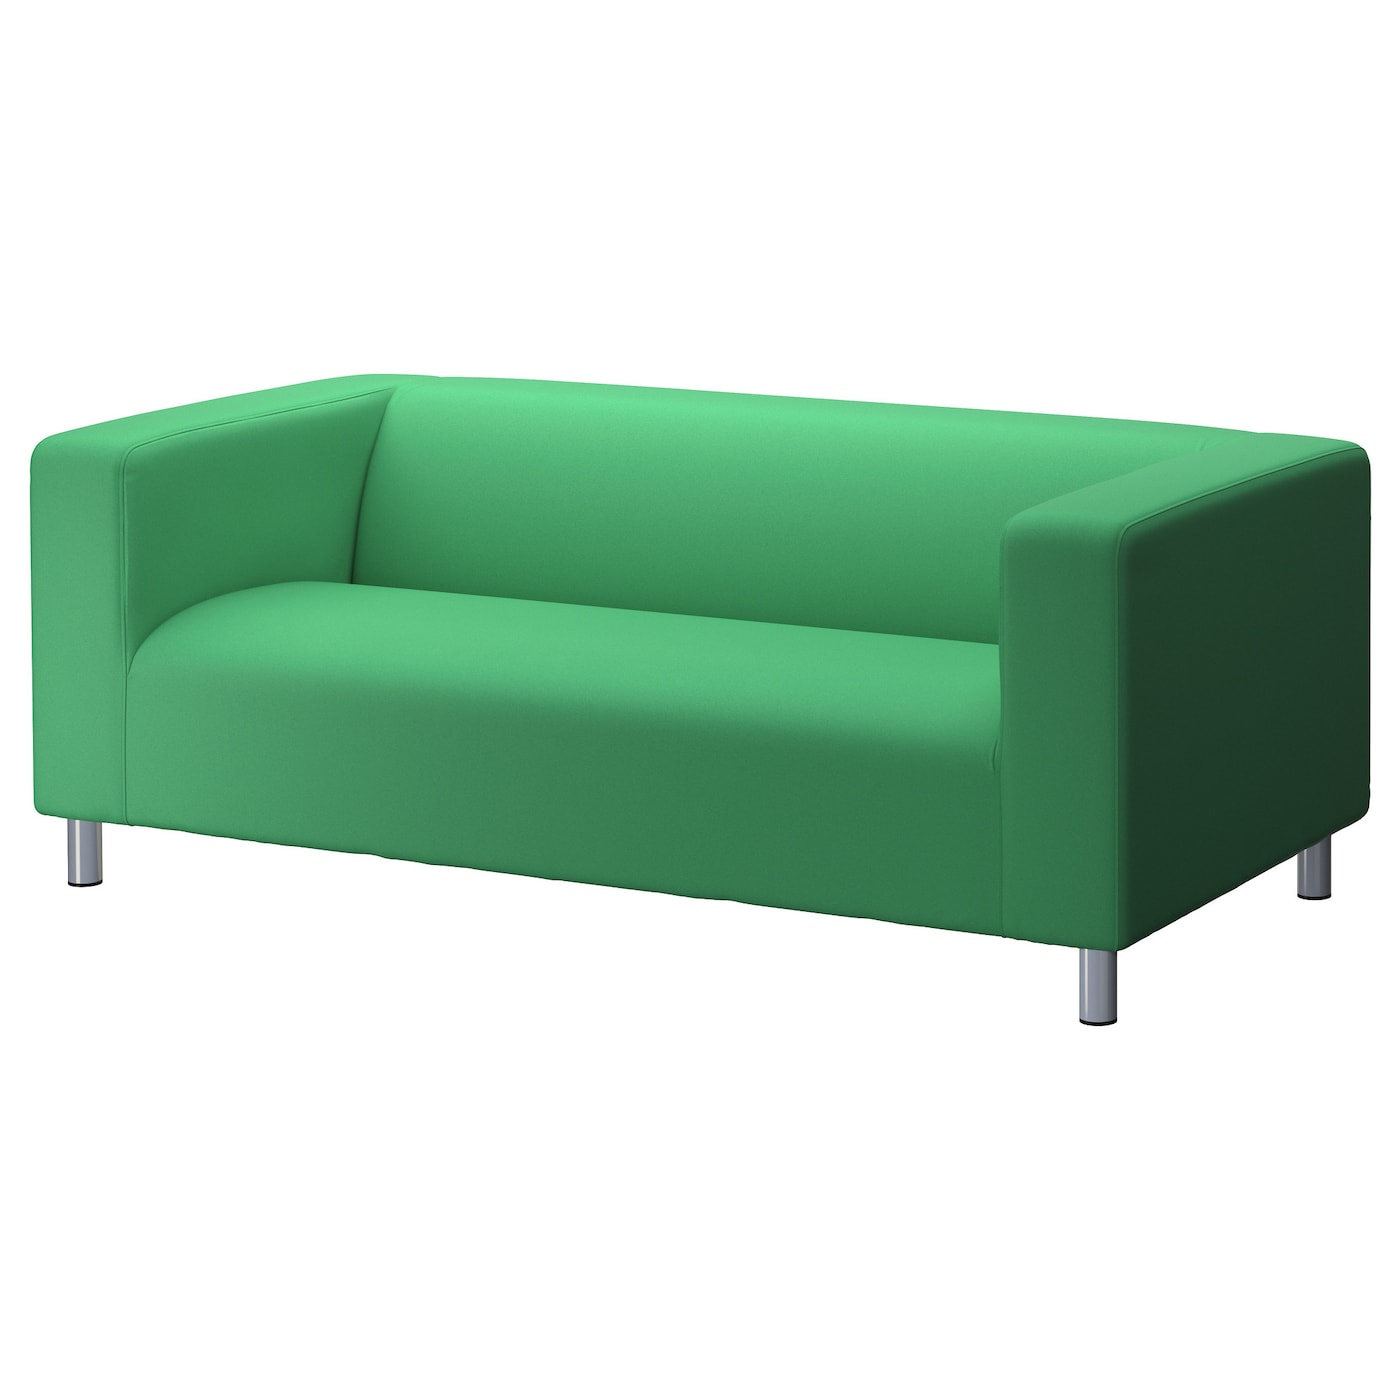 KLIPPAN Cover two seat sofa Flackarp green IKEA